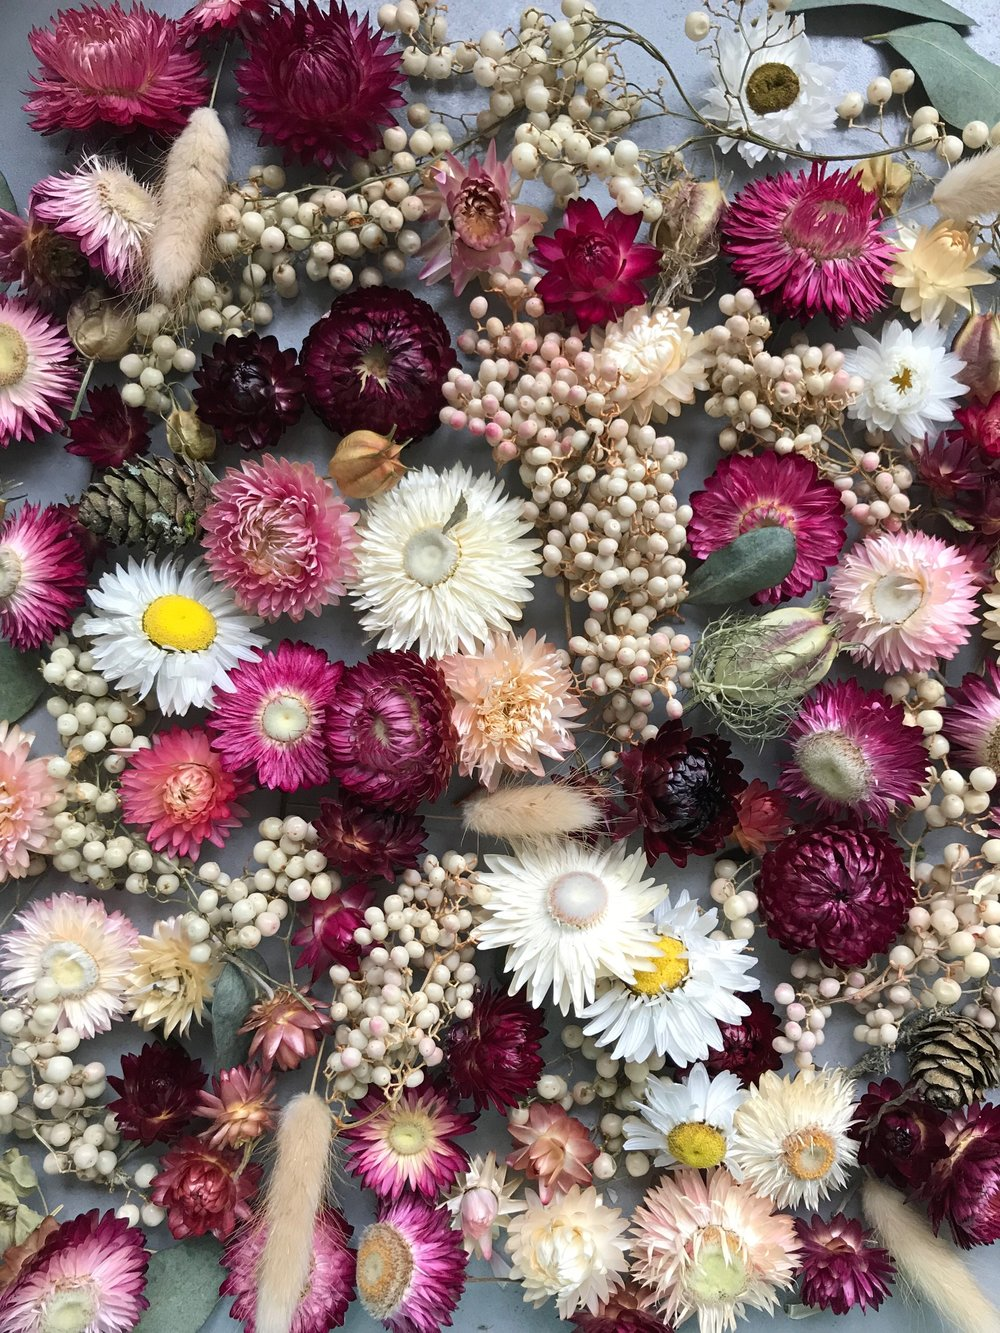 A guide to growing dried flowers